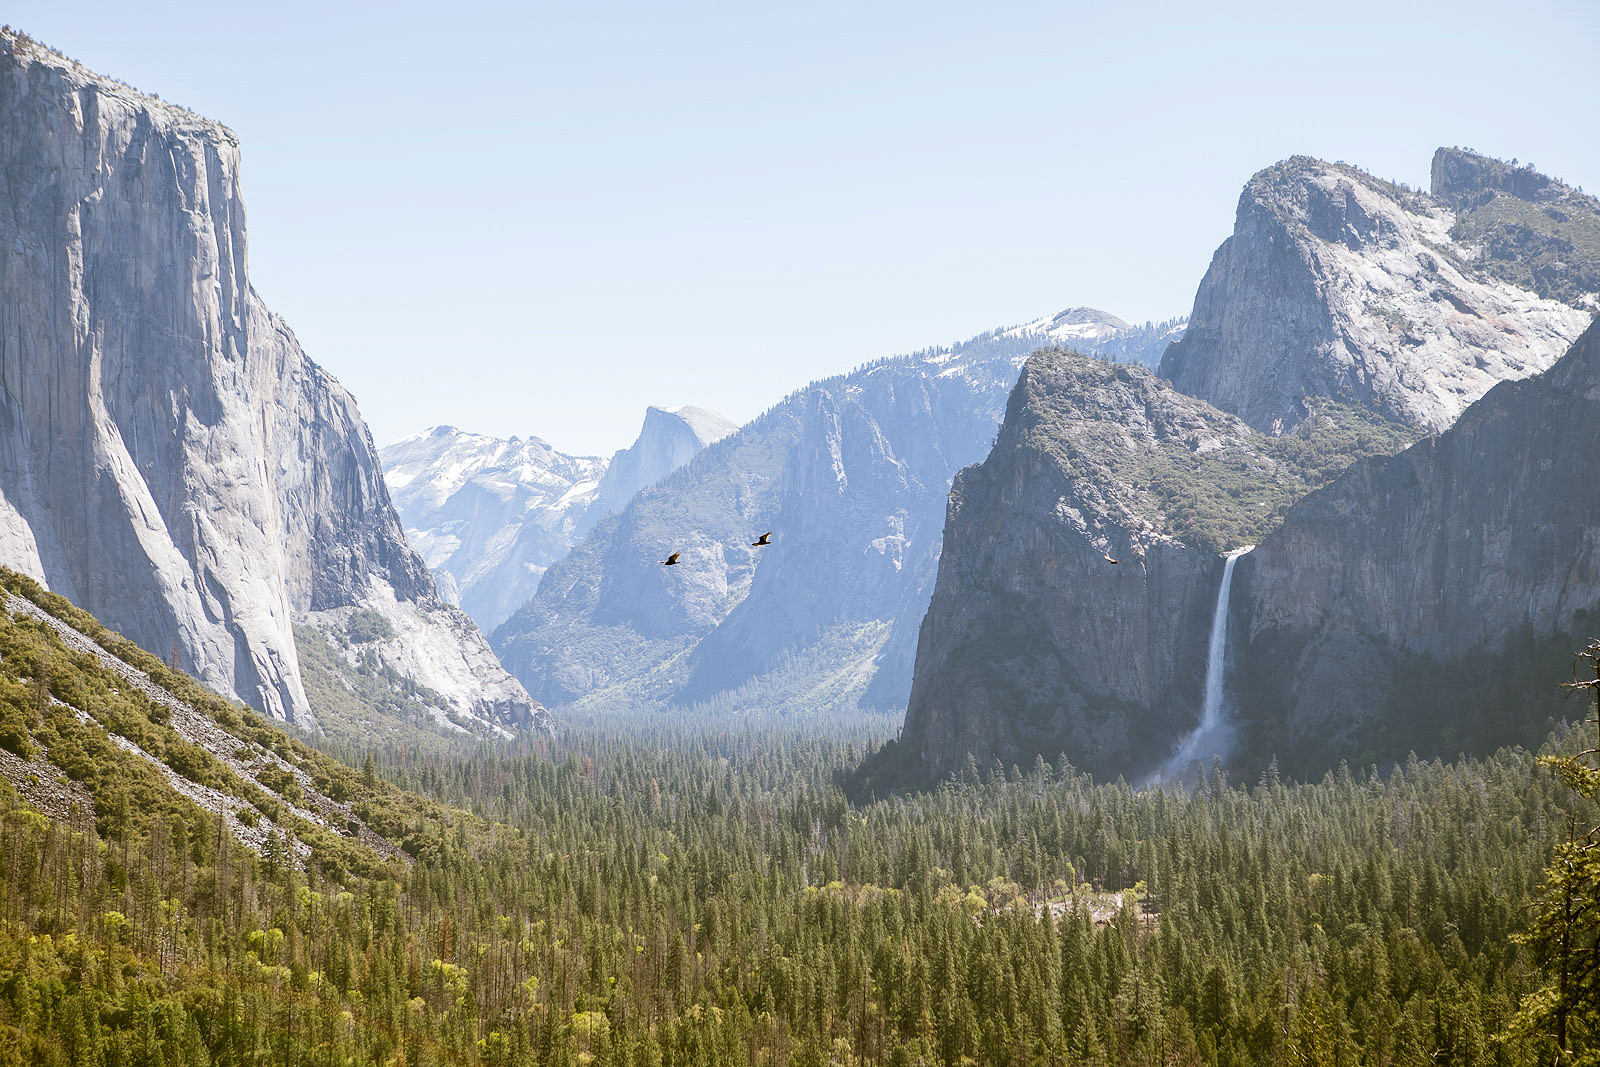 1 Day in Yosemite National Park: The Ultimate Itinerary and All You Need to Know to Plan Your Visit